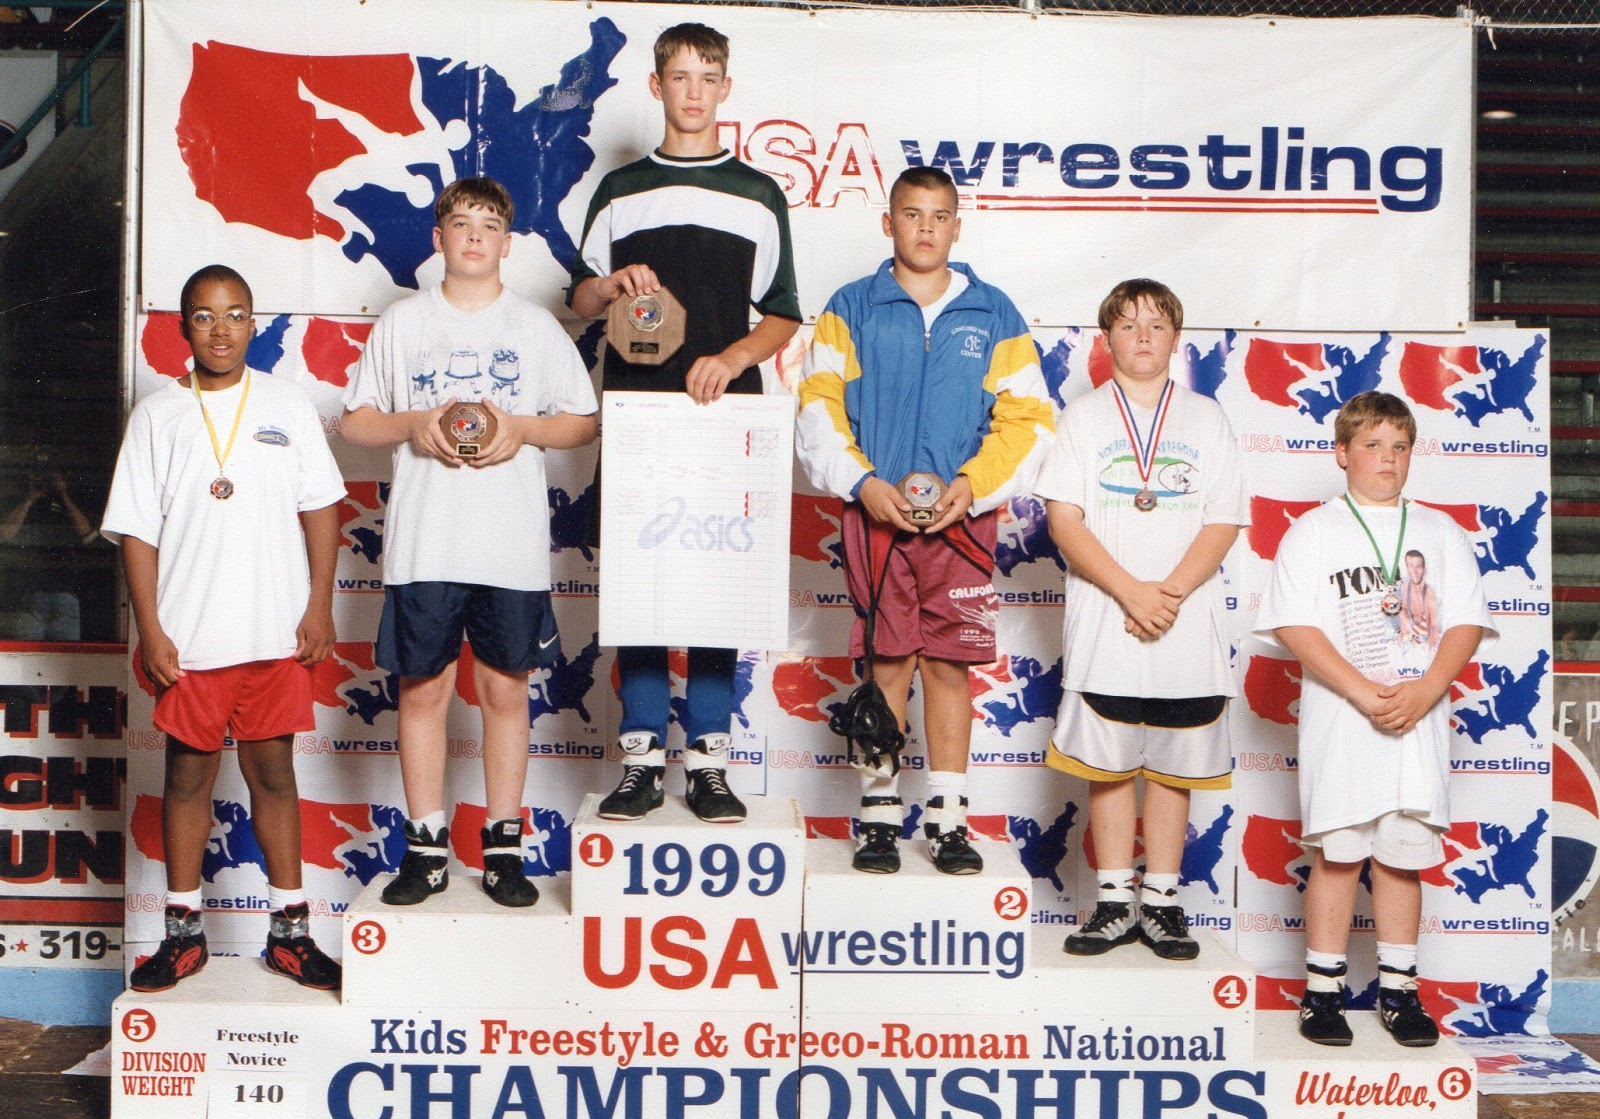 He placed third in a nationwide wrestling competition only a few weeks before his life changed forever.  (image supplied)